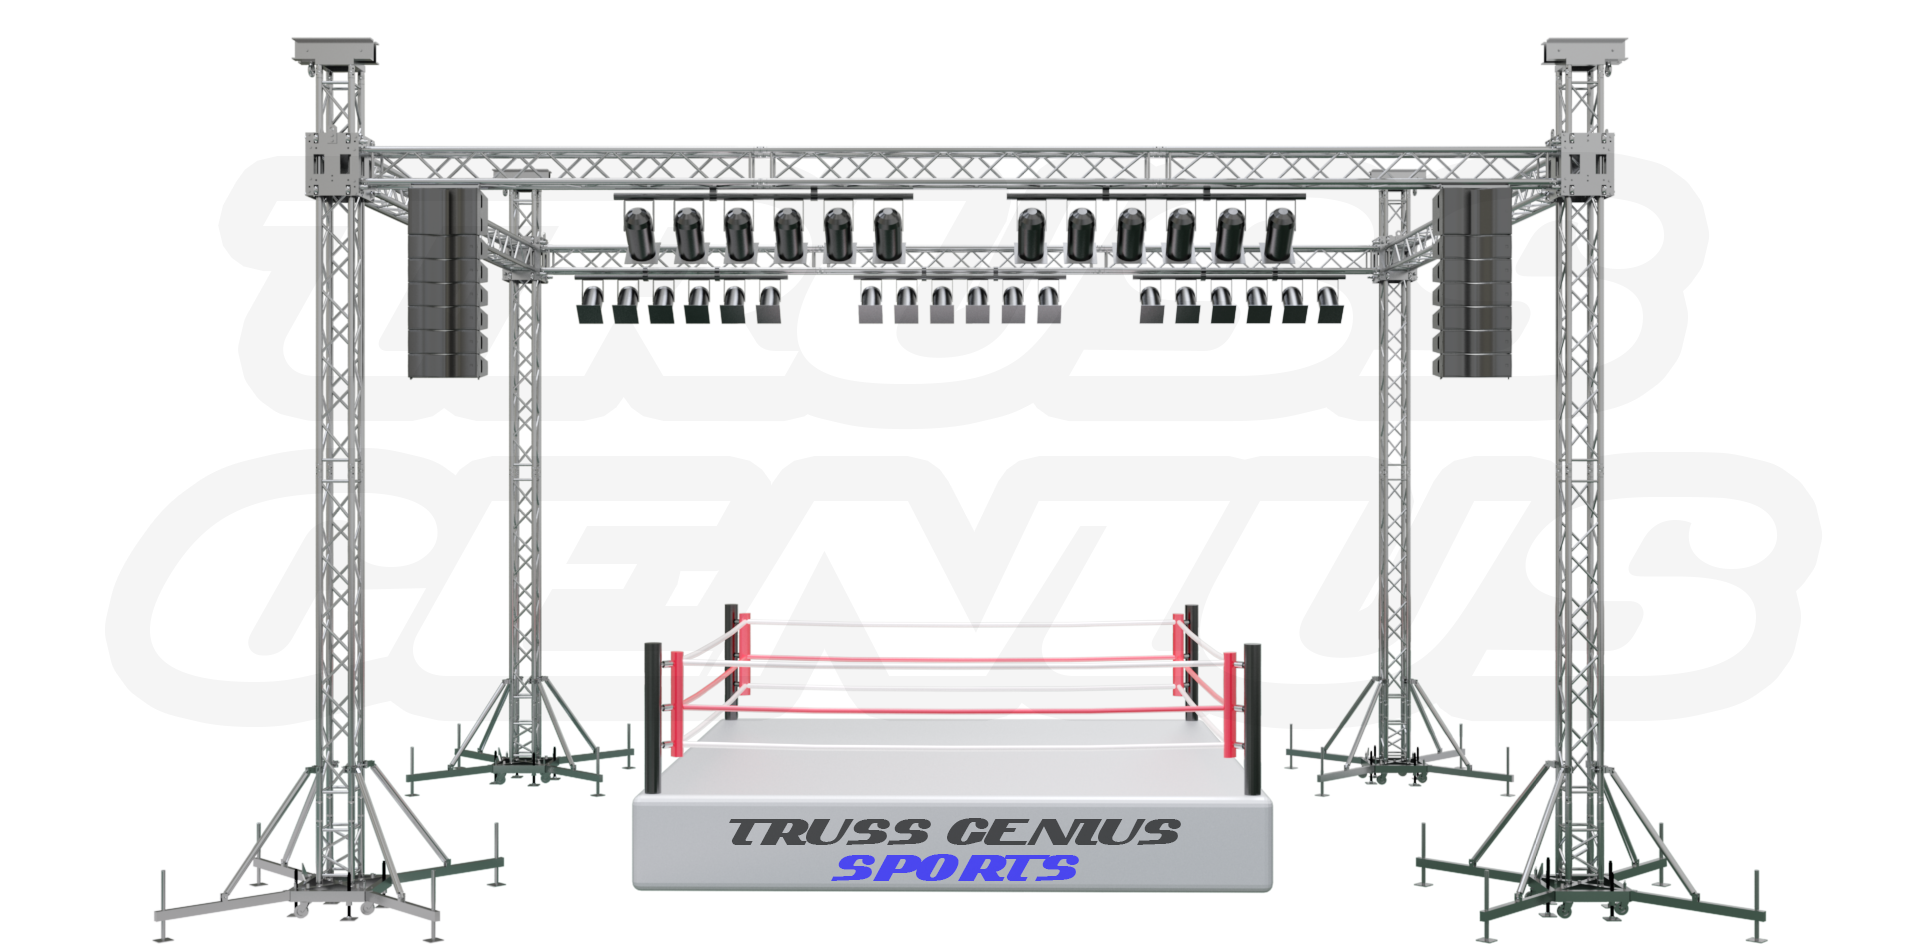 boxing, boxing ring, aluminum truss, global truss, ground support, sport event truss, truss system, truss genius